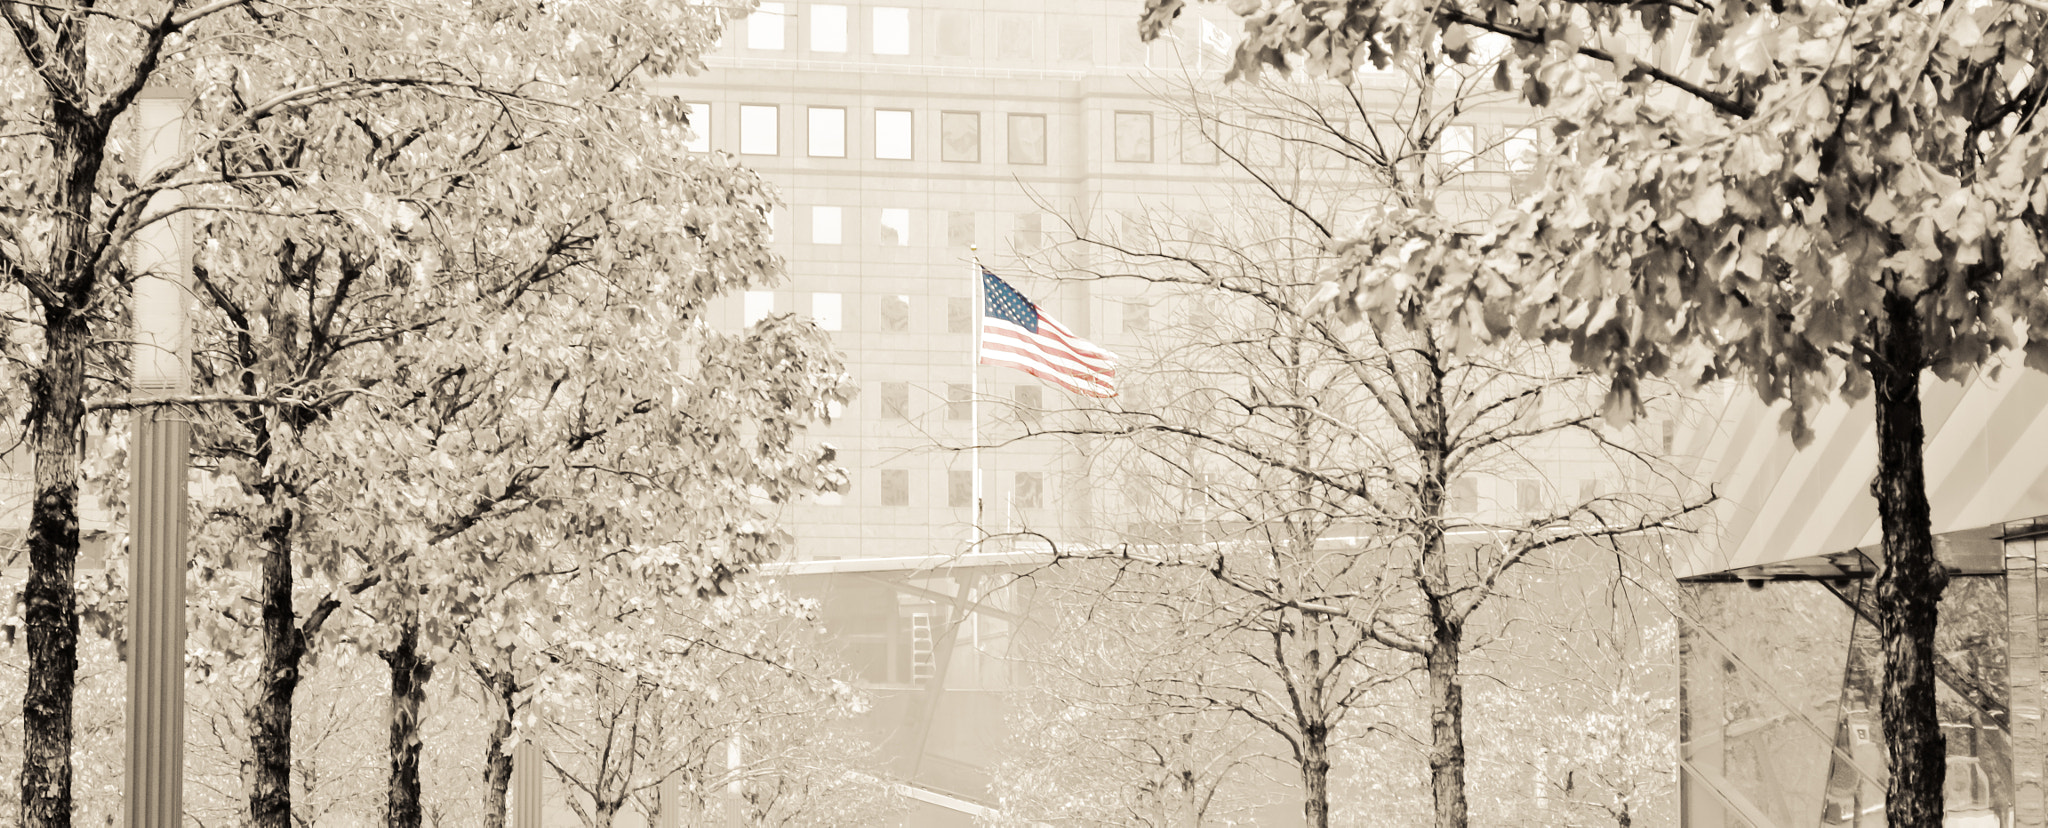 Photograph America by Justin Shultz on 500px